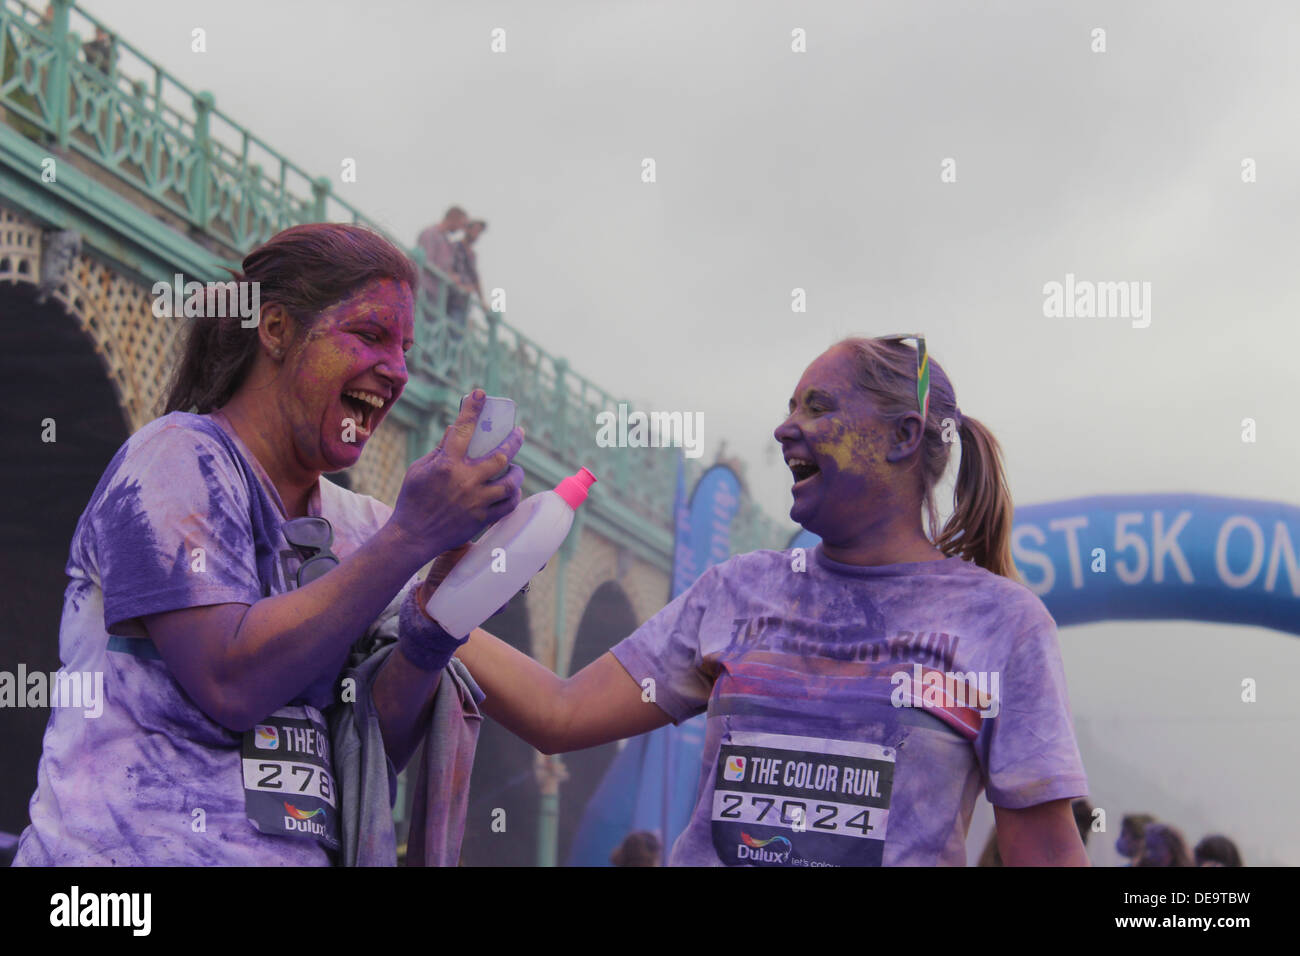 The Color Run™ event is a one of a kind experience that is less about speed and more about enjoying a color crazy day with your - Stock Image